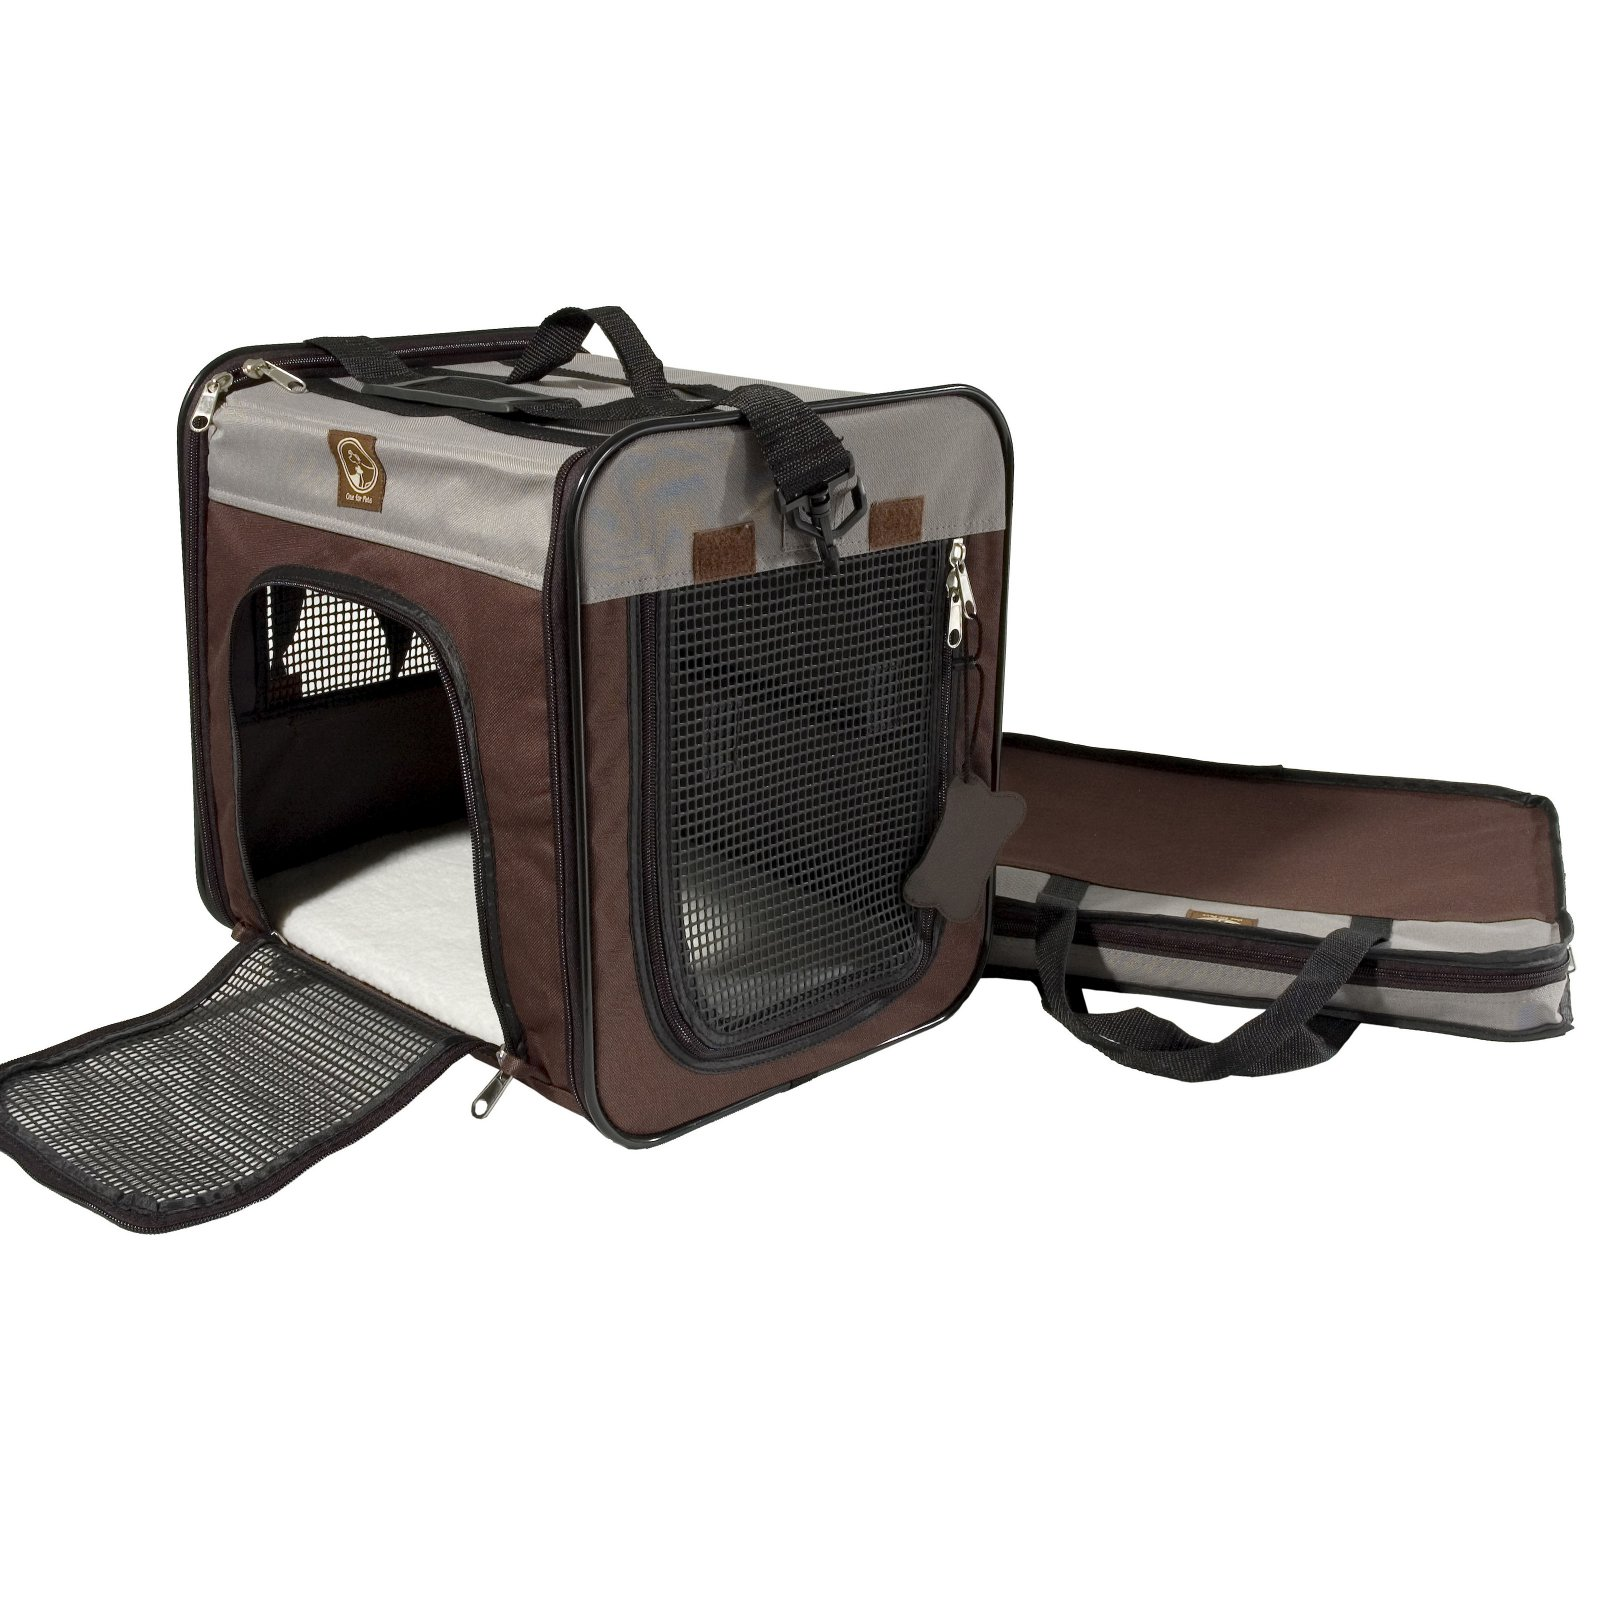 One For Pets Folding Carriers - The Cube - Large - Cream/Brown